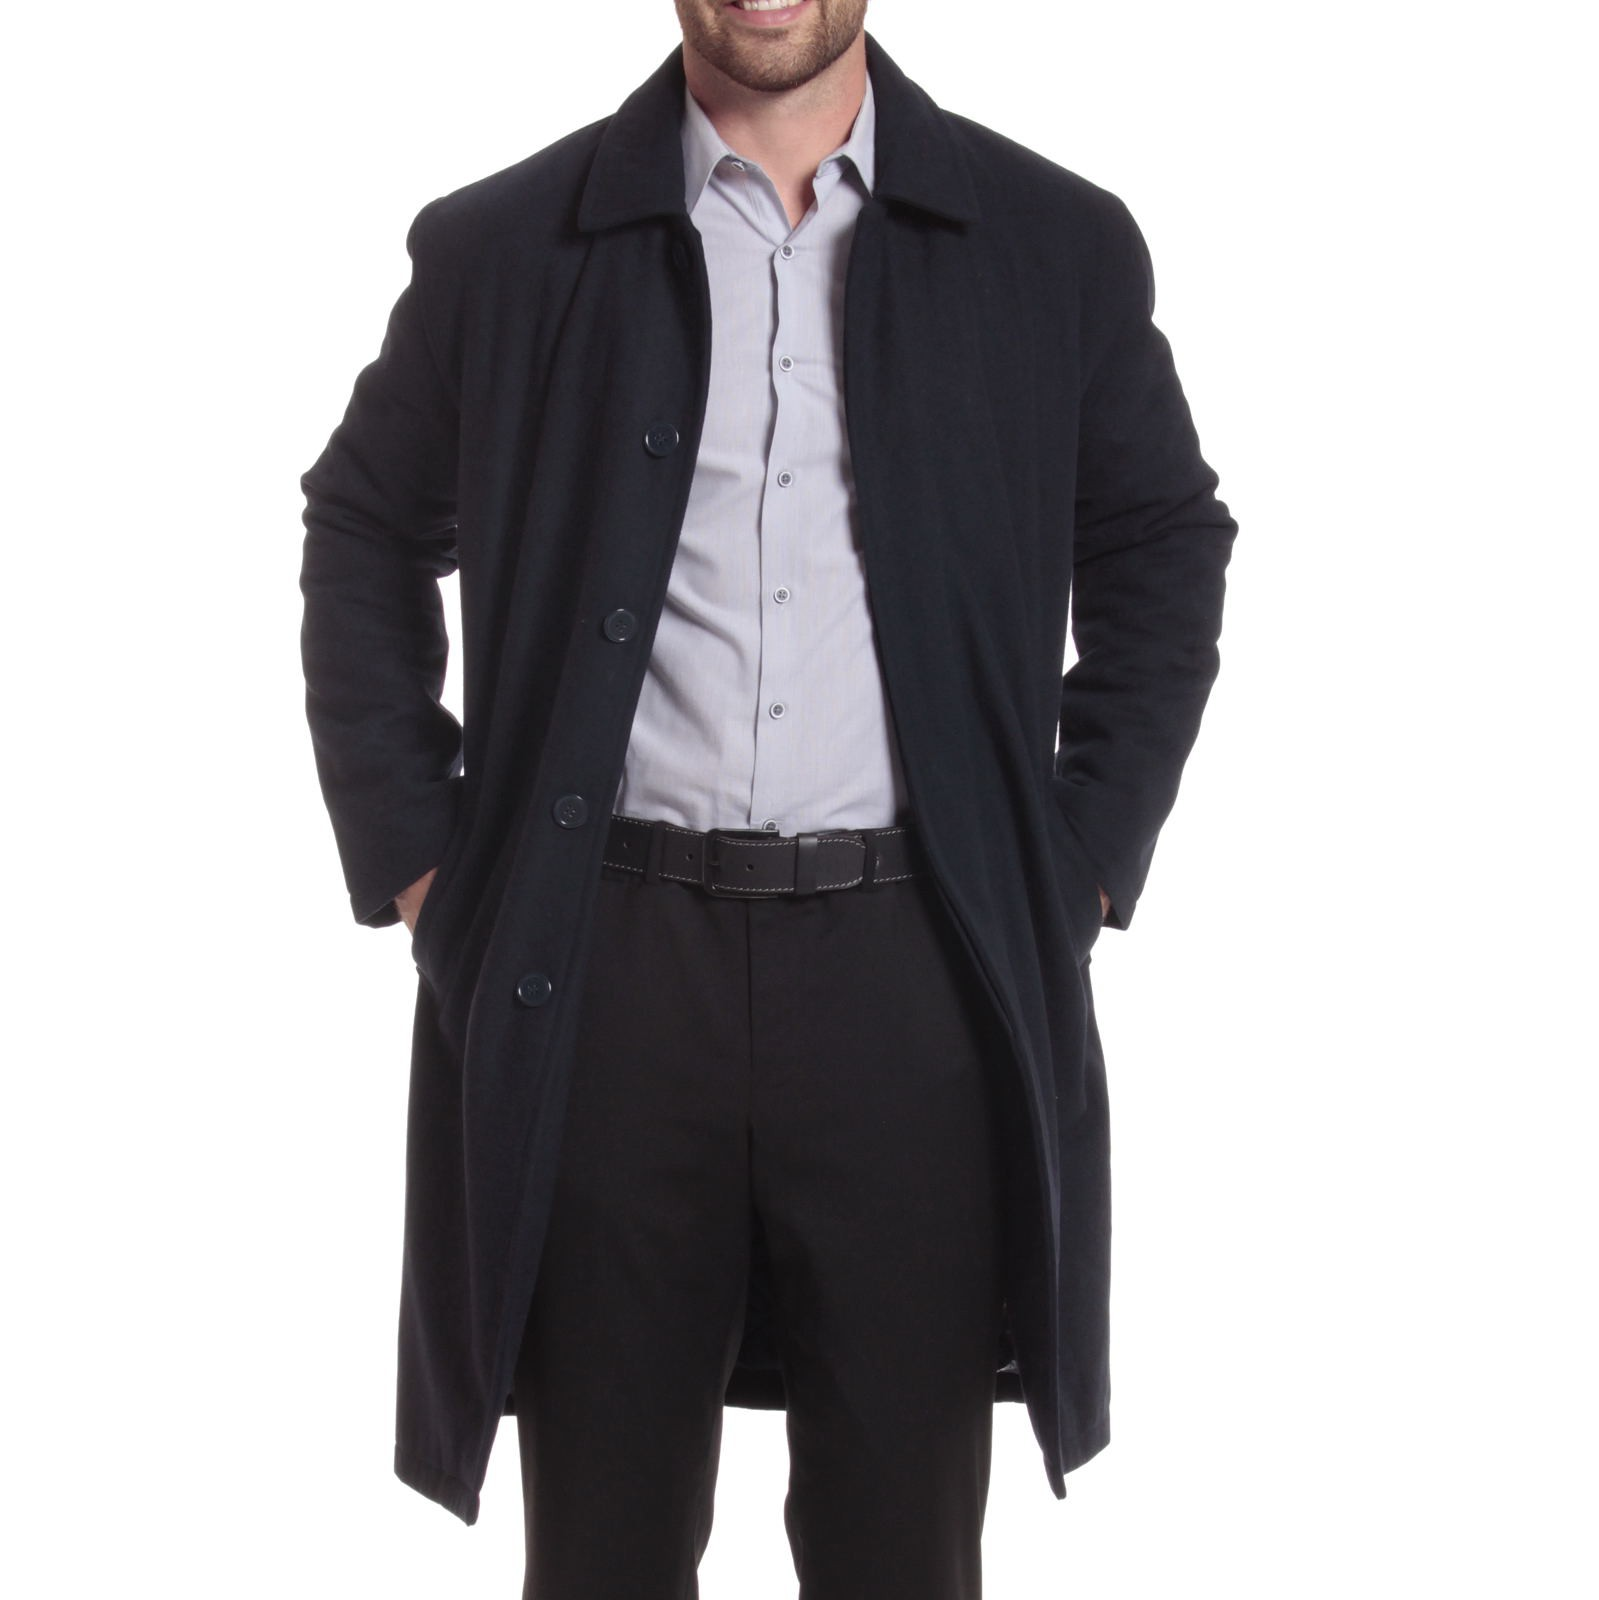 Alpine-Swiss-Mens-Zach-Knee-Length-Jacket-Top-Coat-Trench-Wool-Blend-Overcoat thumbnail 51